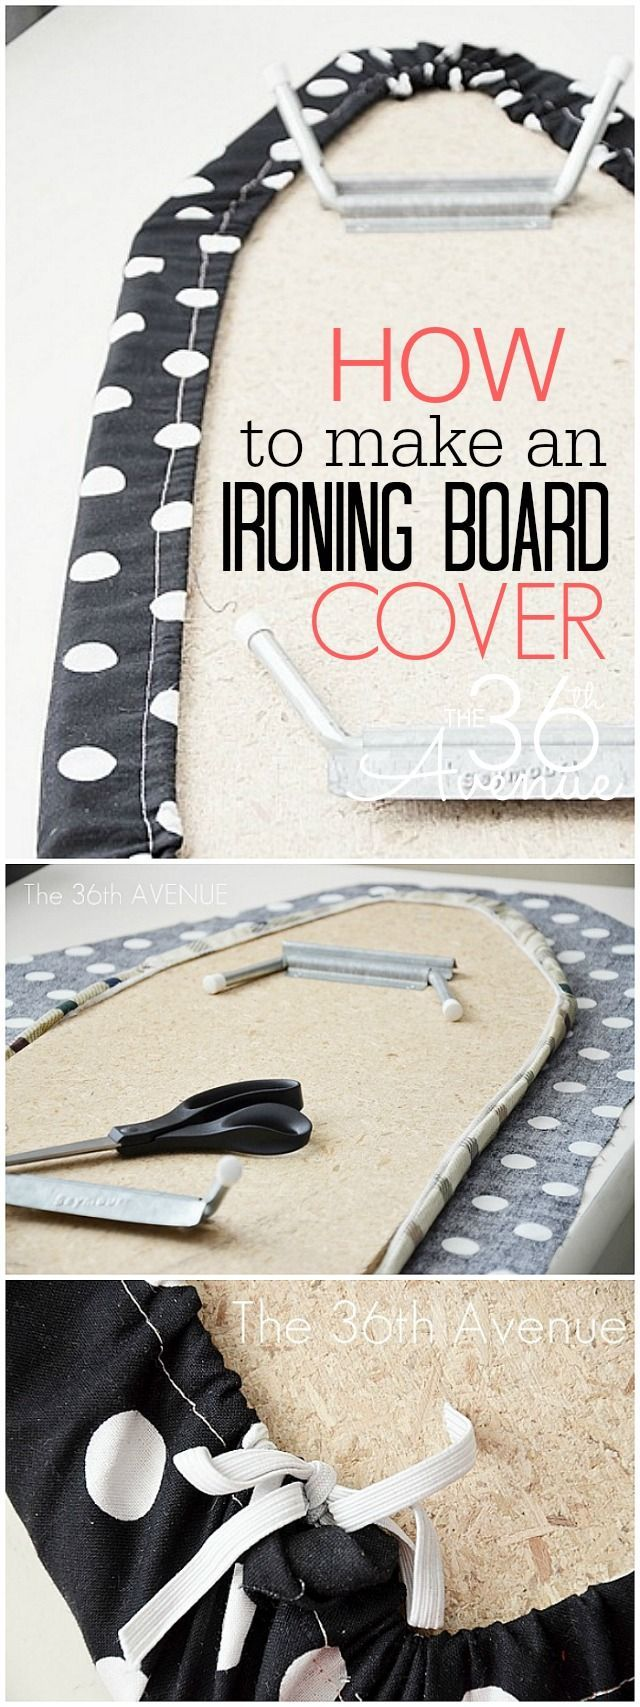 How to make an ironing board cover tutorial! Great sewing tutorial for your home.